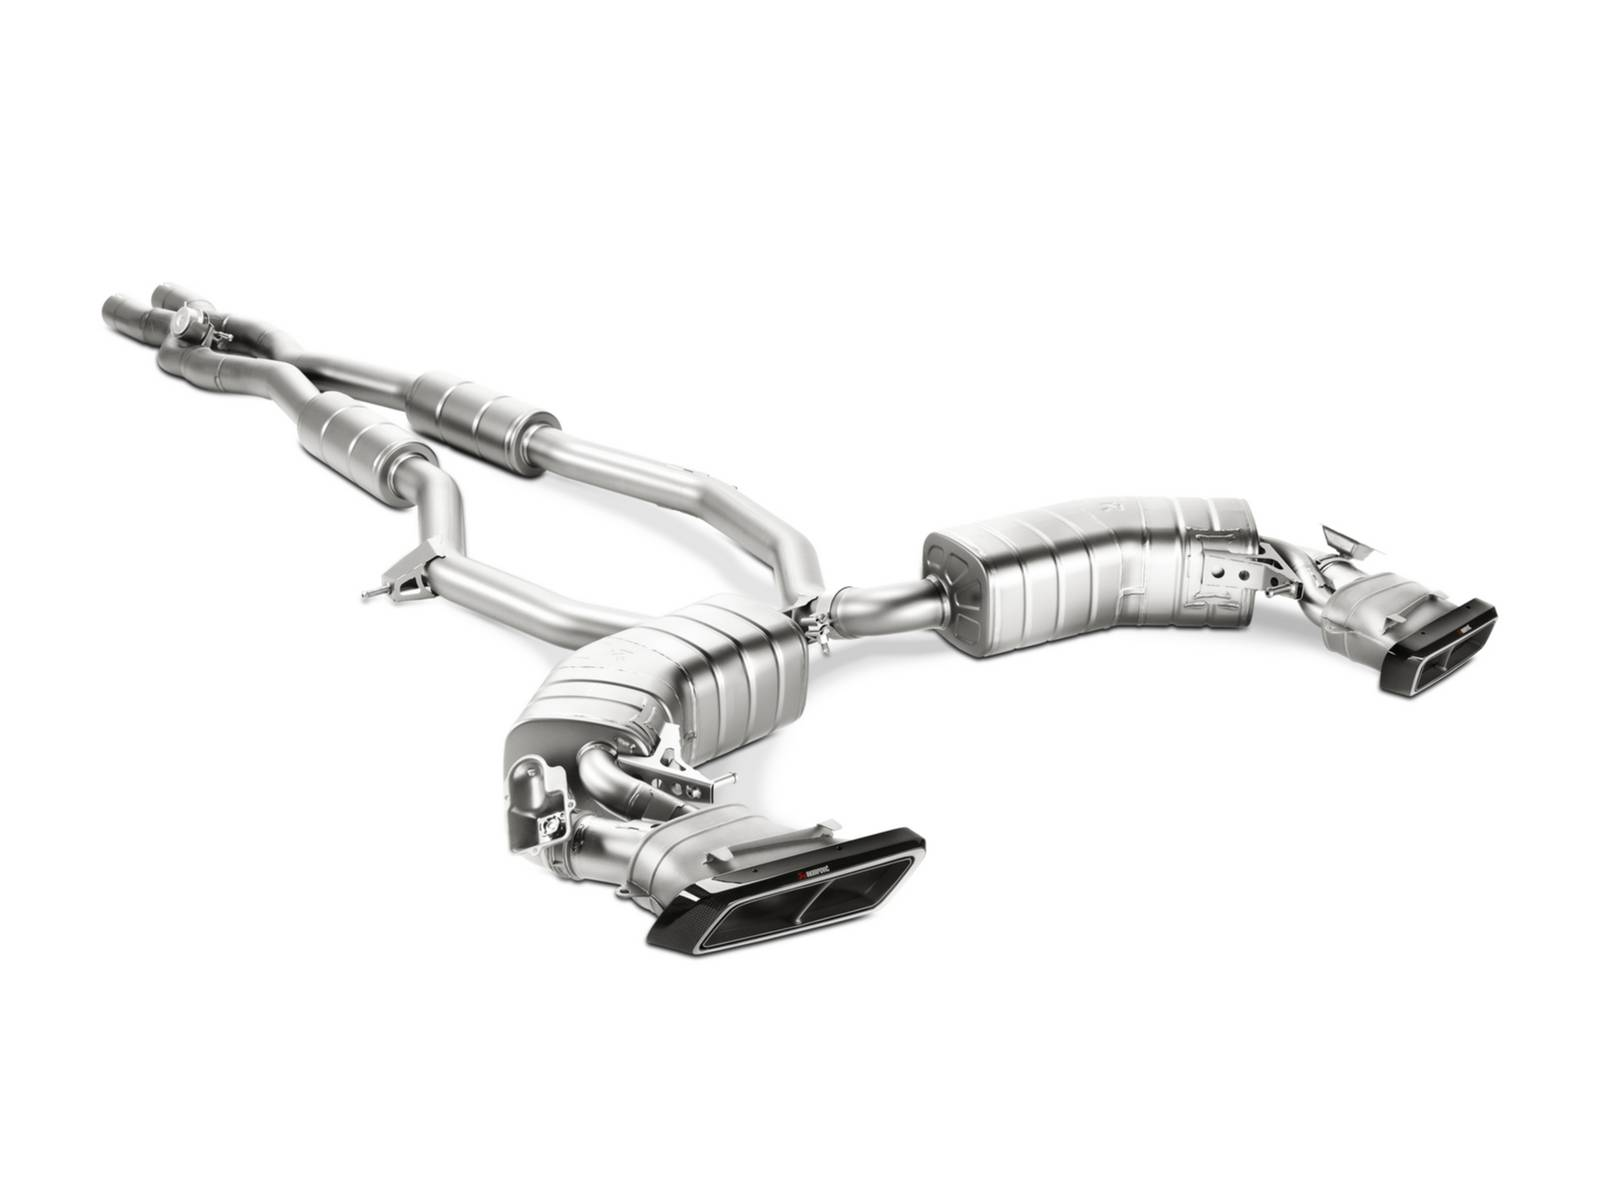 akrapovic launches brand new ultra light exhaust system